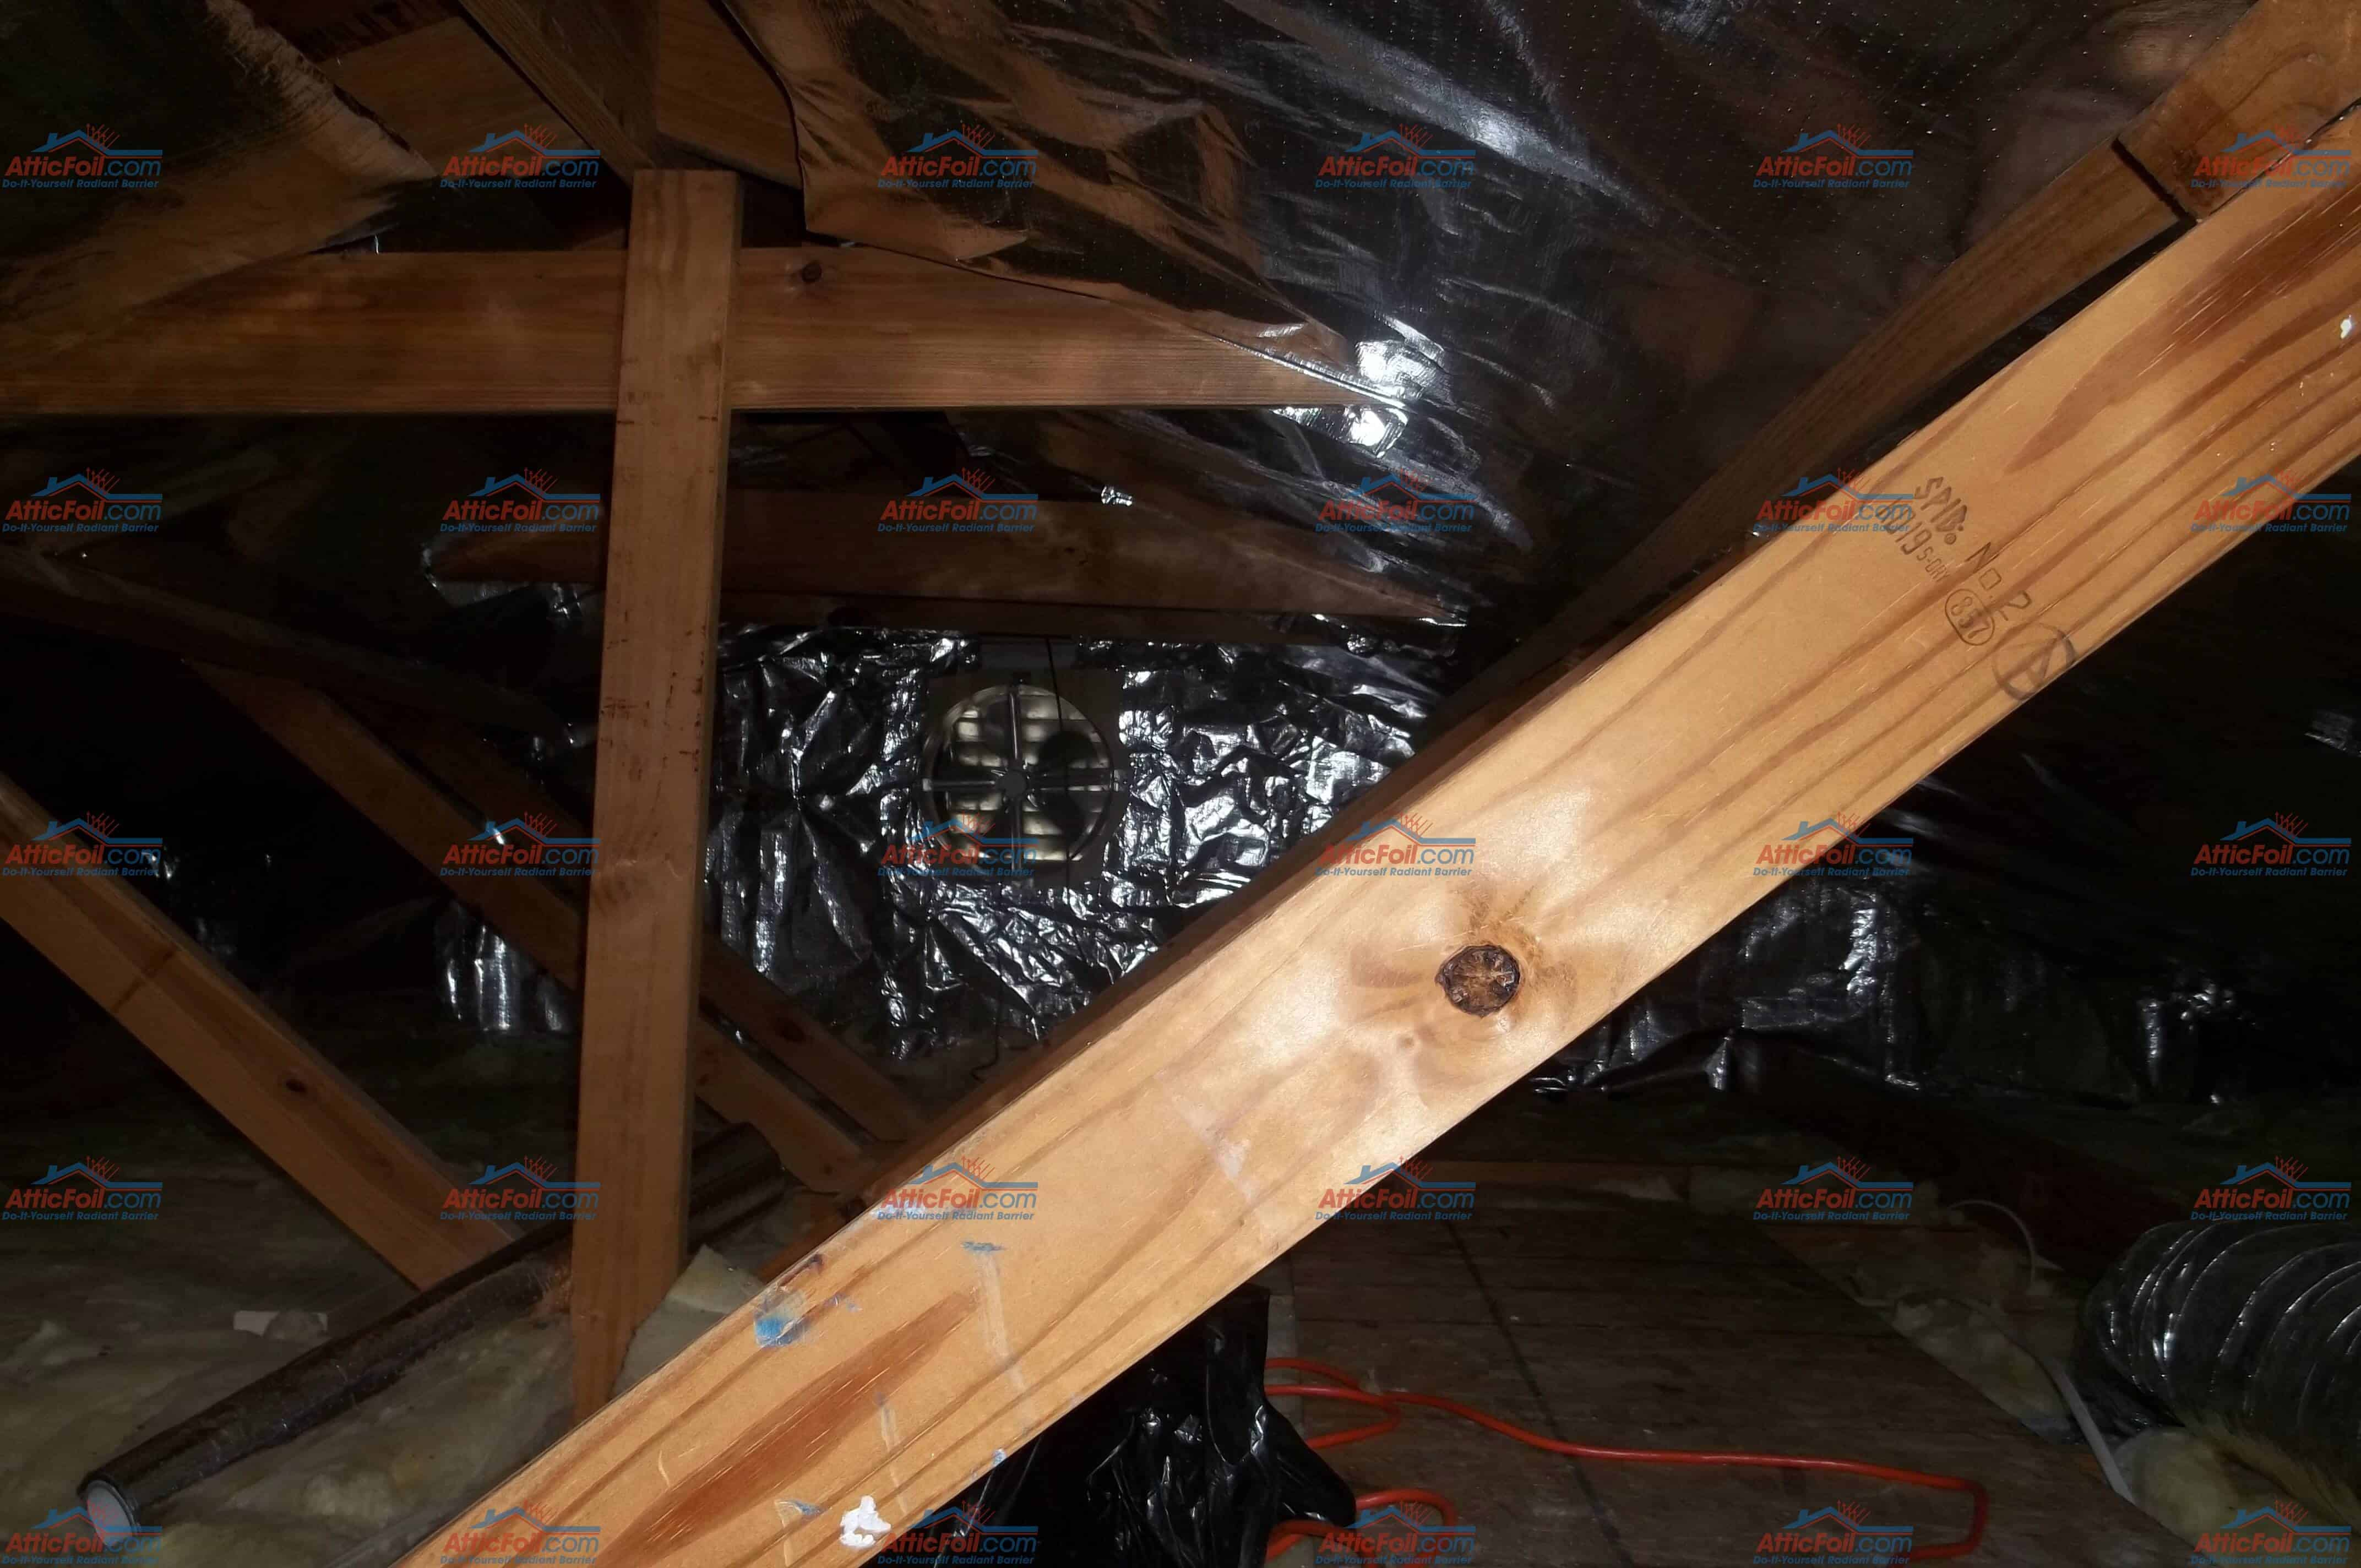 To see complete install instructions for a traditional rafter attic go here. To see complete install info for a truss attic go here. & Gallery: Staple Up Installs - AtticFoil™ Radiant Barrier - Do-It ...